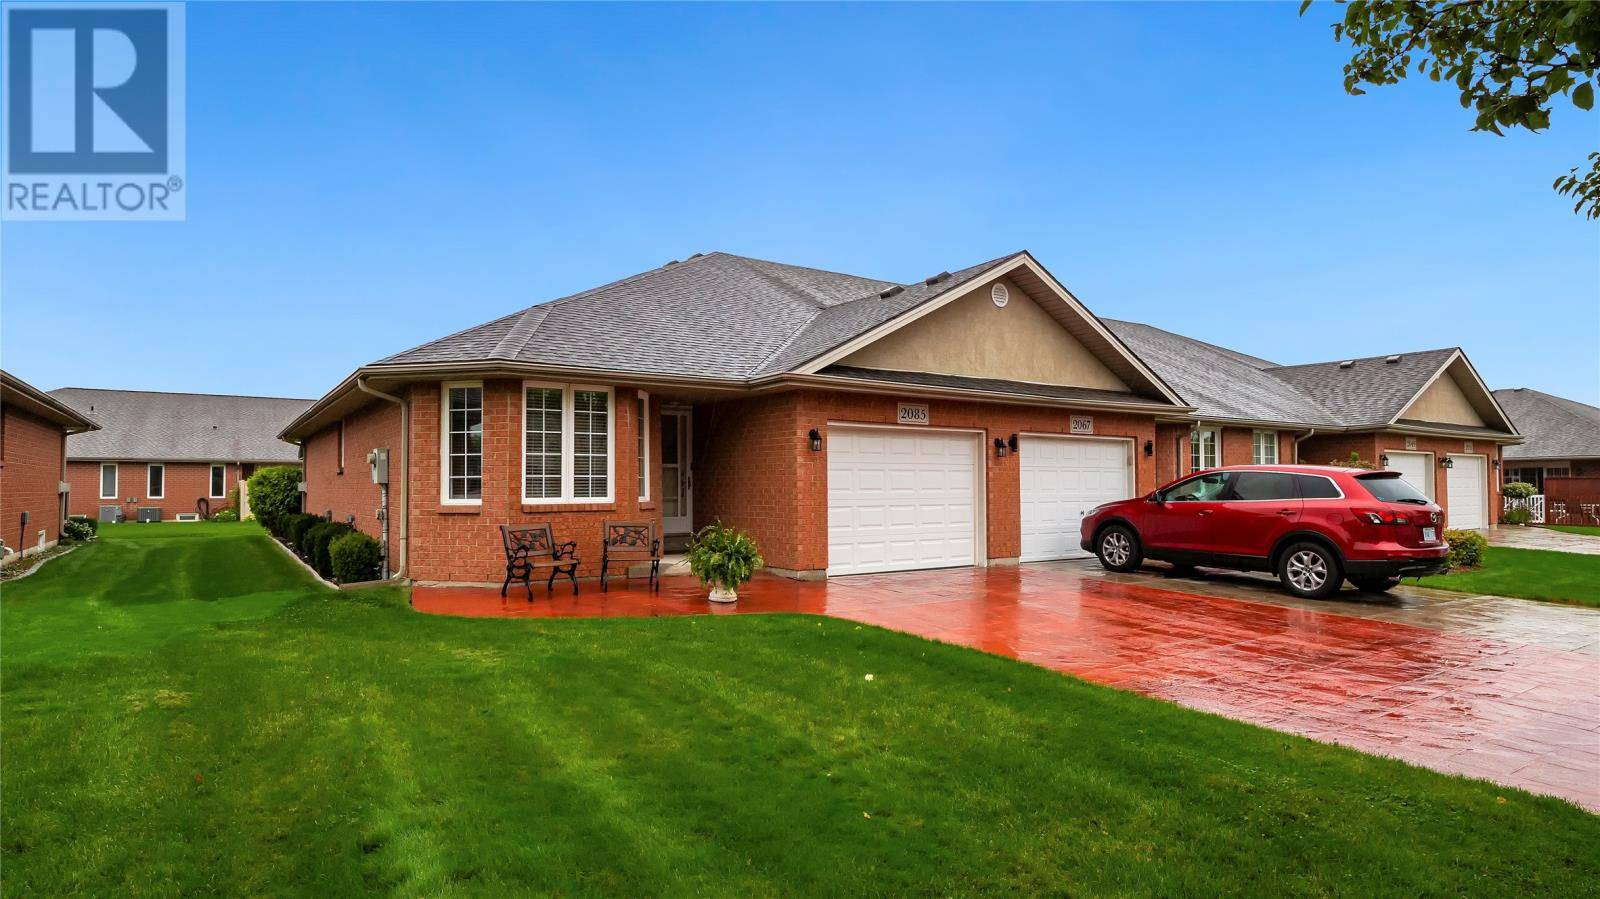 Townhouse for sale at 2085 Chateau Ave Windsor Ontario - MLS: 19026719